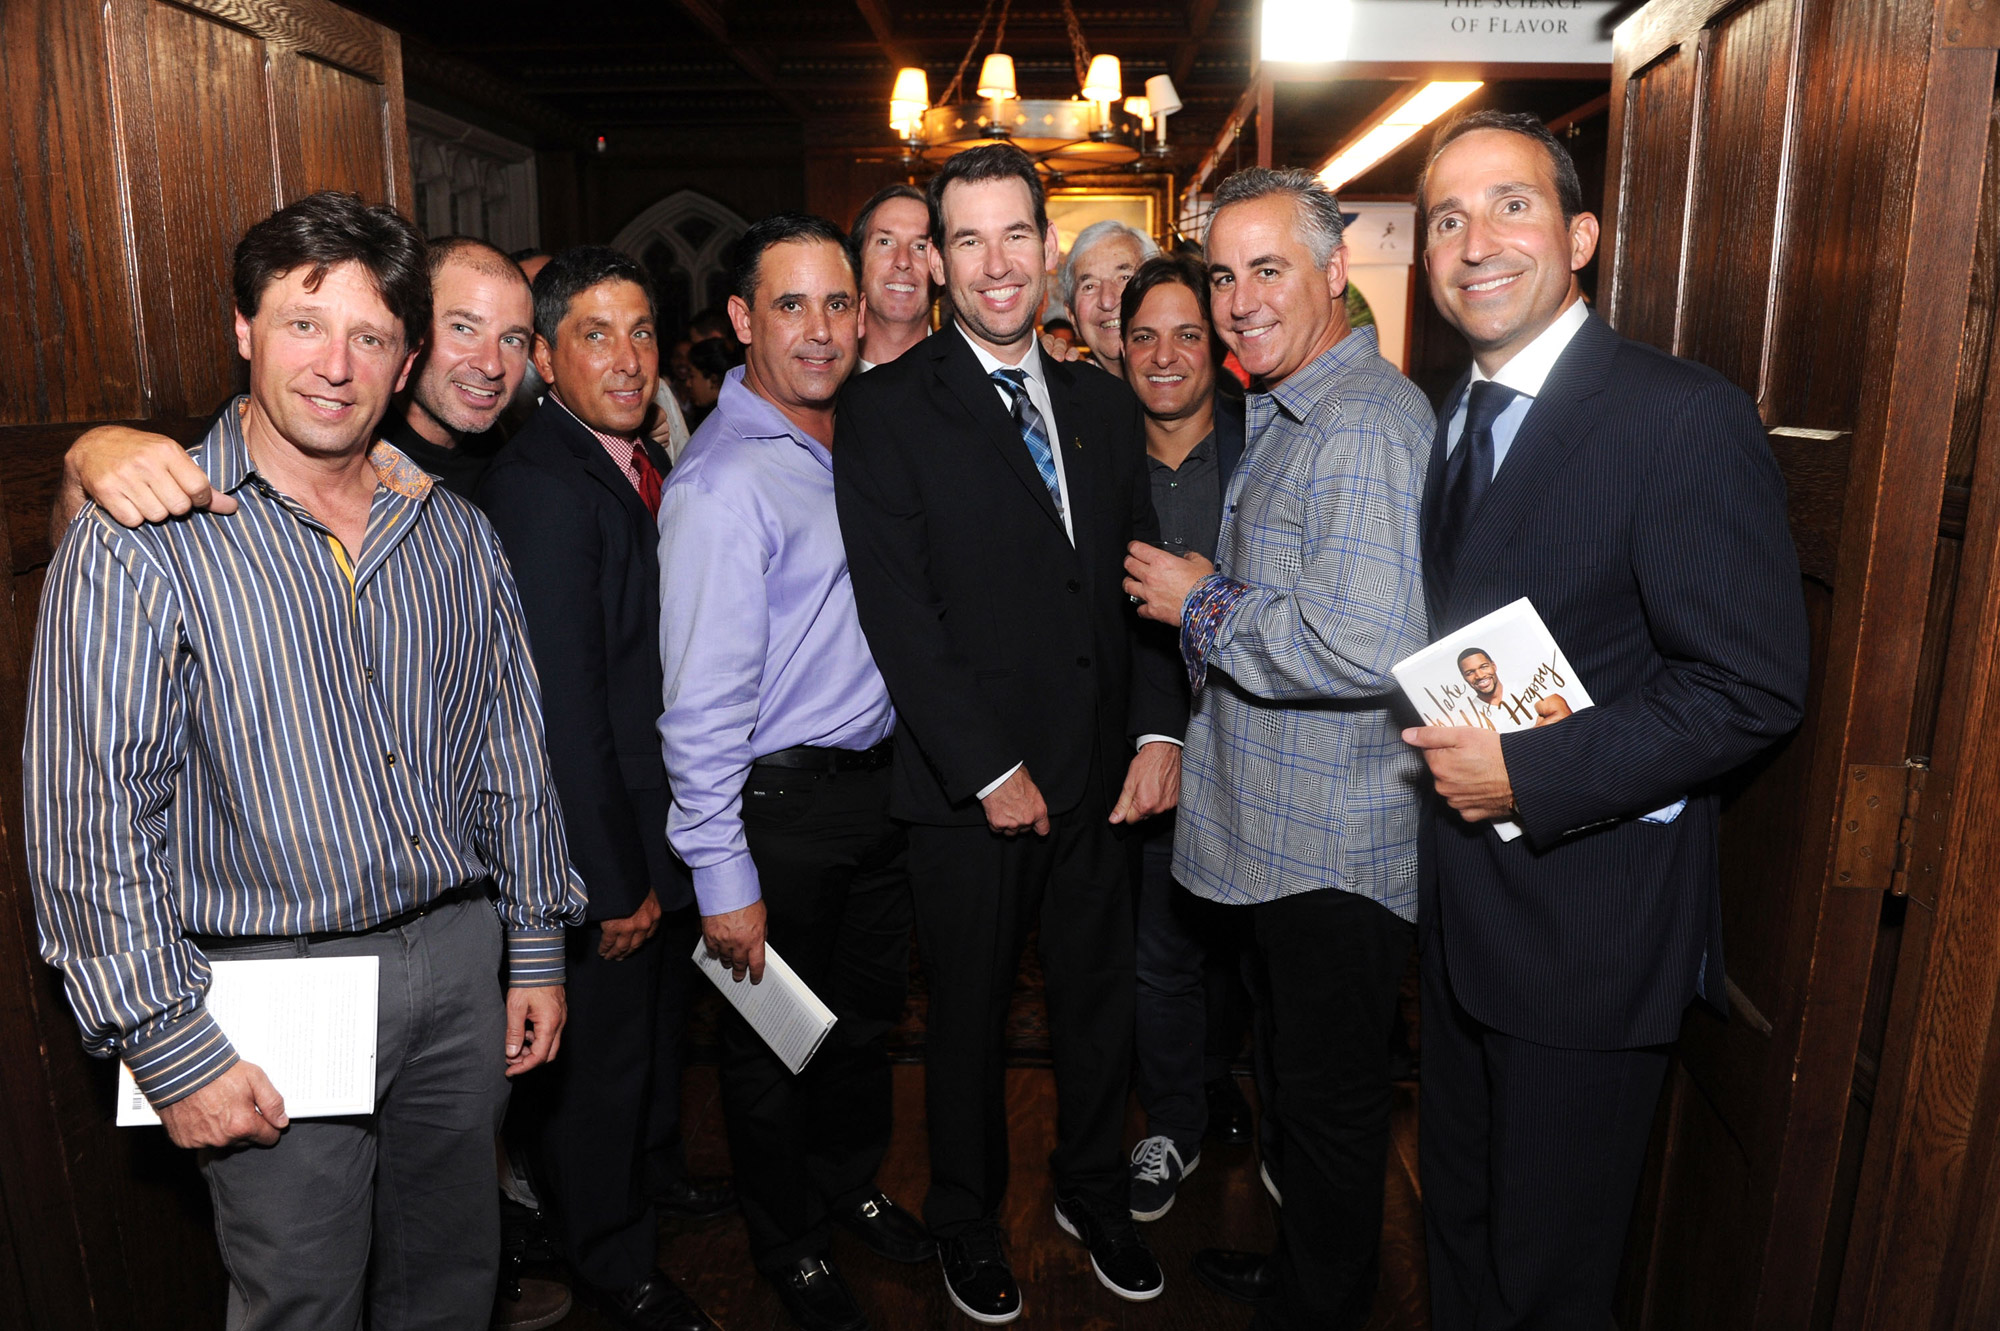 Doug Ellin and his 'Entourage' at Johnnie Walker launch of Joy Will Take You Further at The Explorers Club in New York